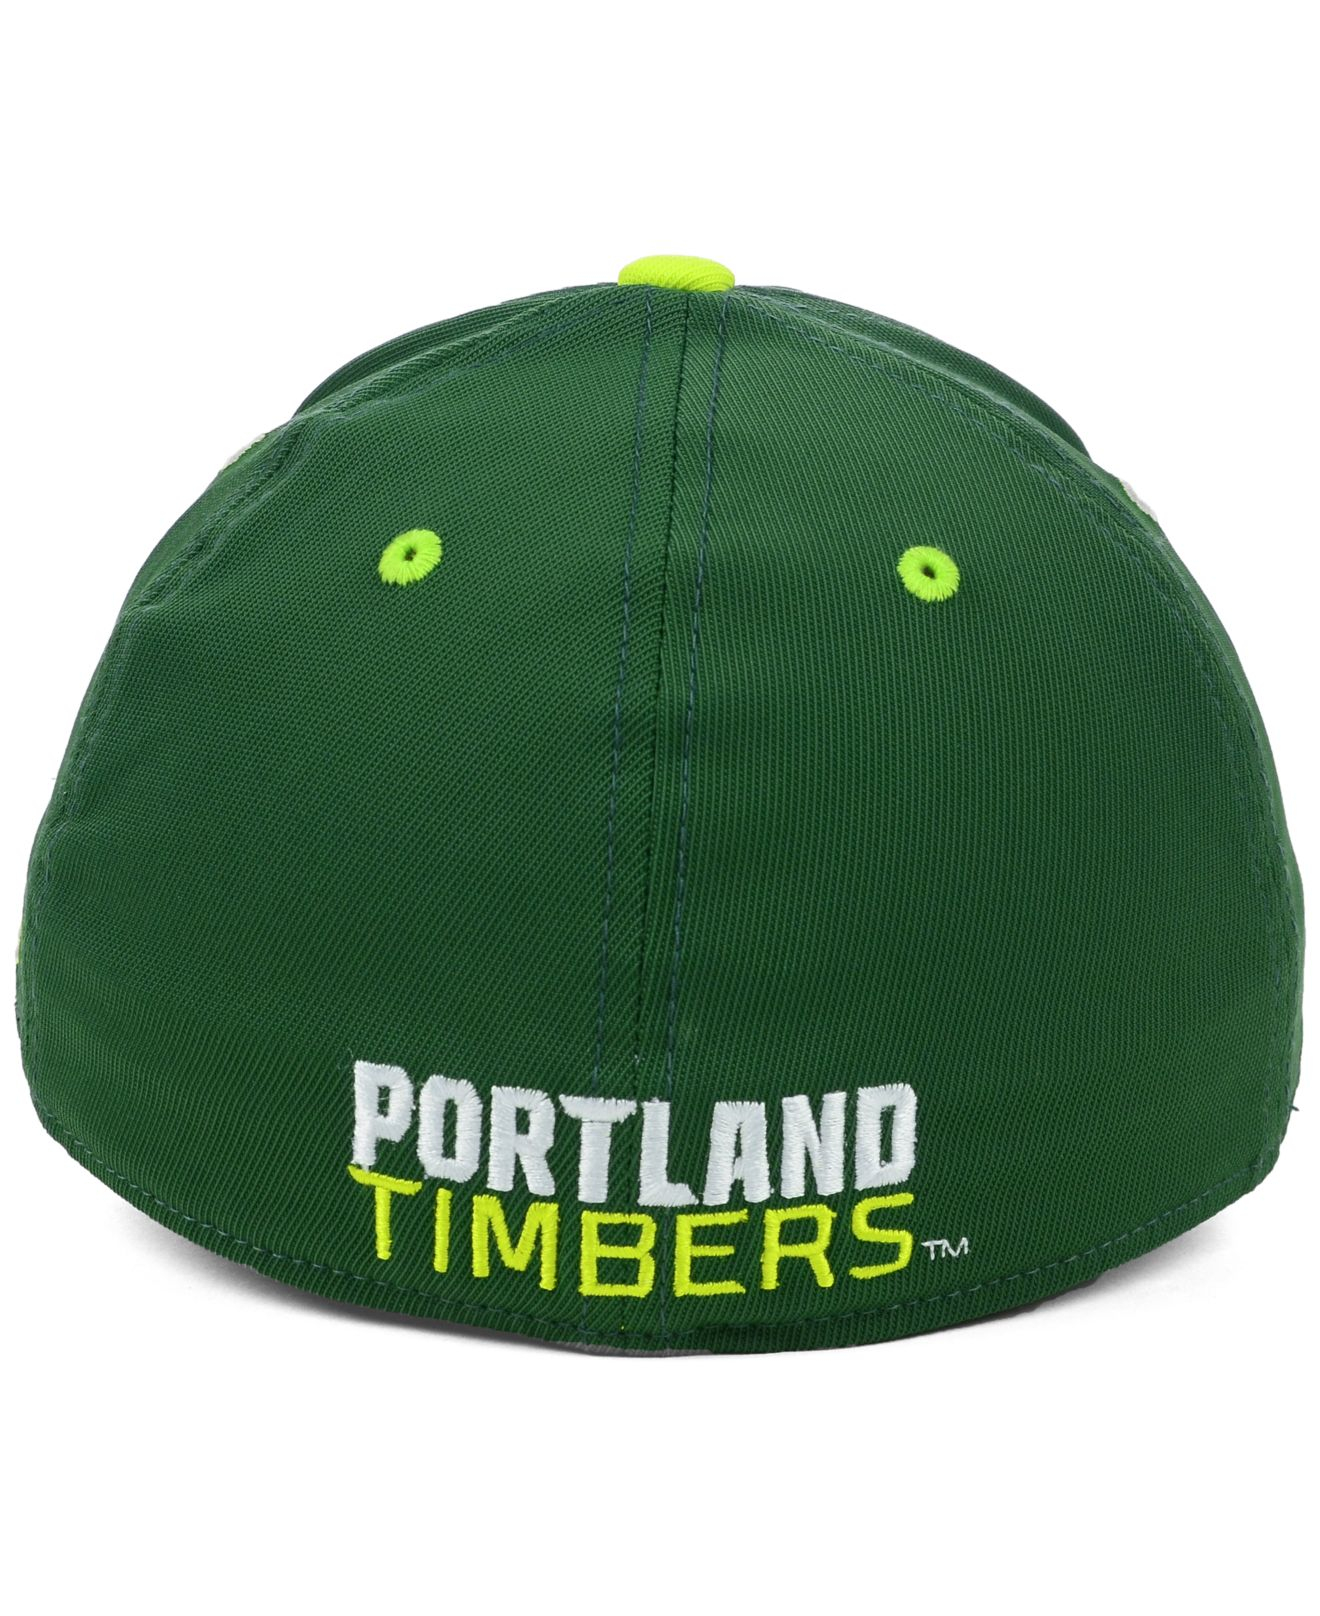 3a354a3d284 ... denmark lyst adidas portland timbers mls mid fielder cap in green for  men 68c10 9fd80